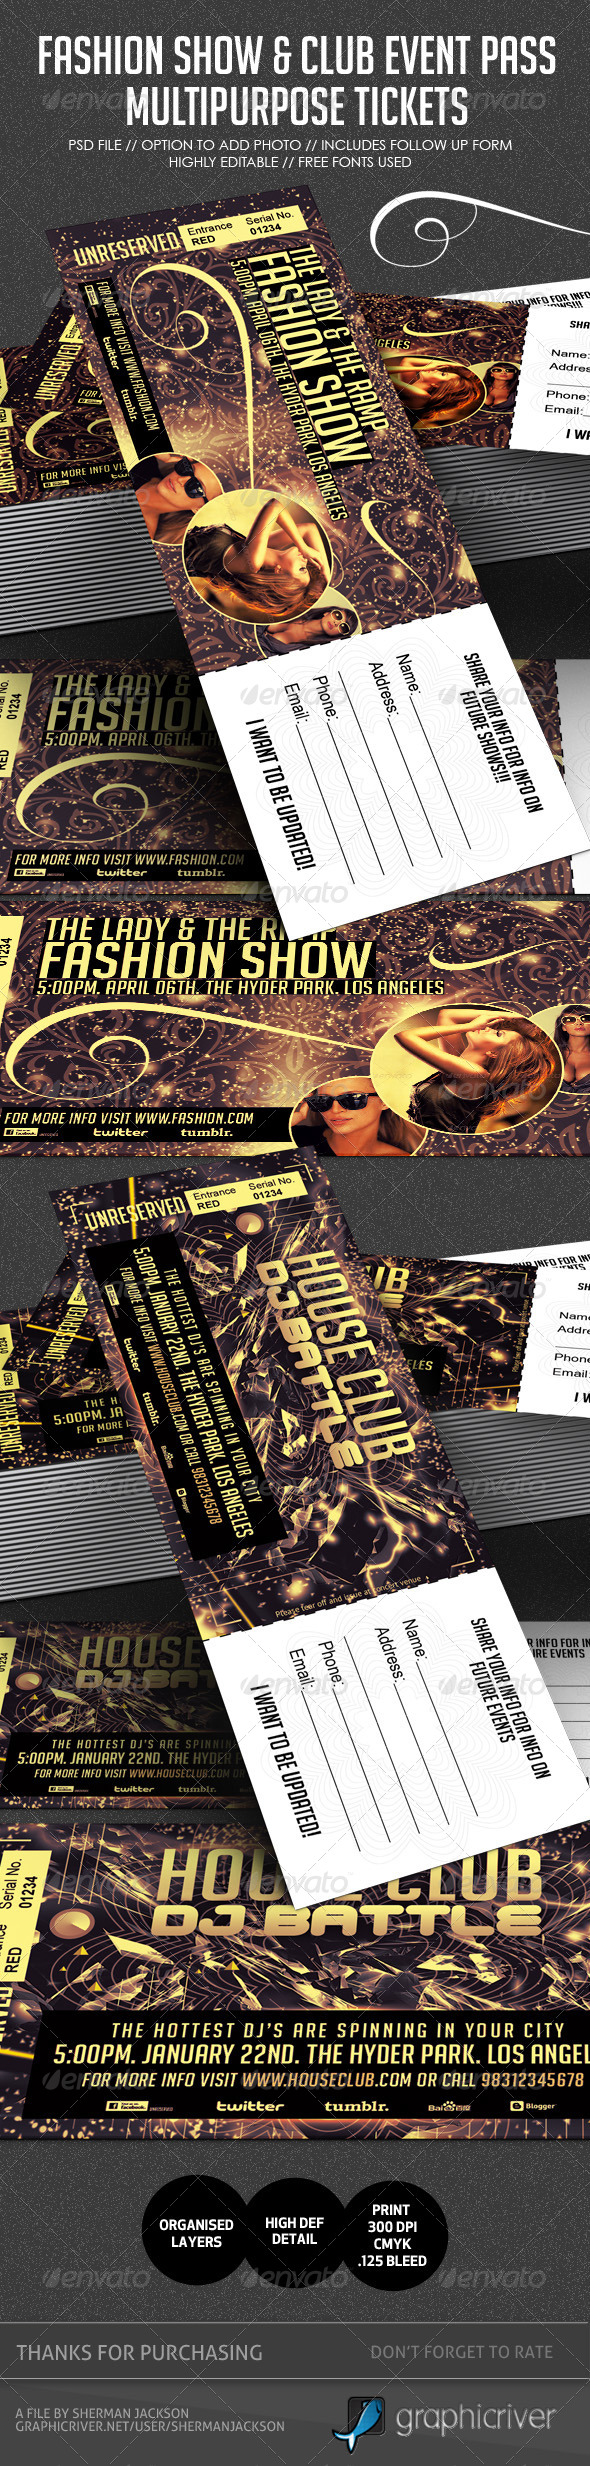 GraphicRiver Fashion Show & Club Event Multipurpose Tickets 4365434